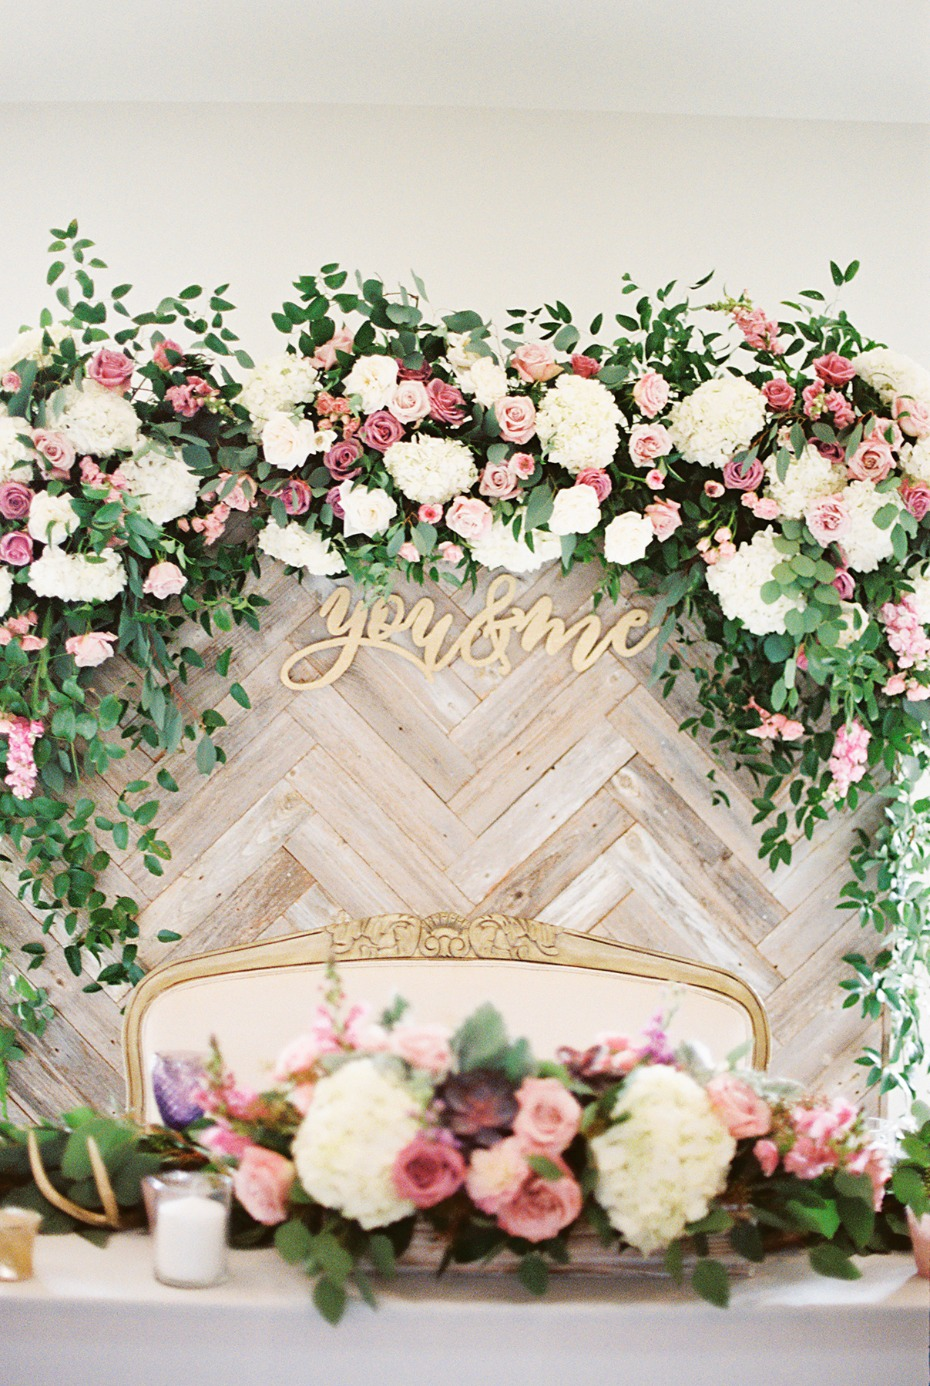 Sweetheart table backdrop